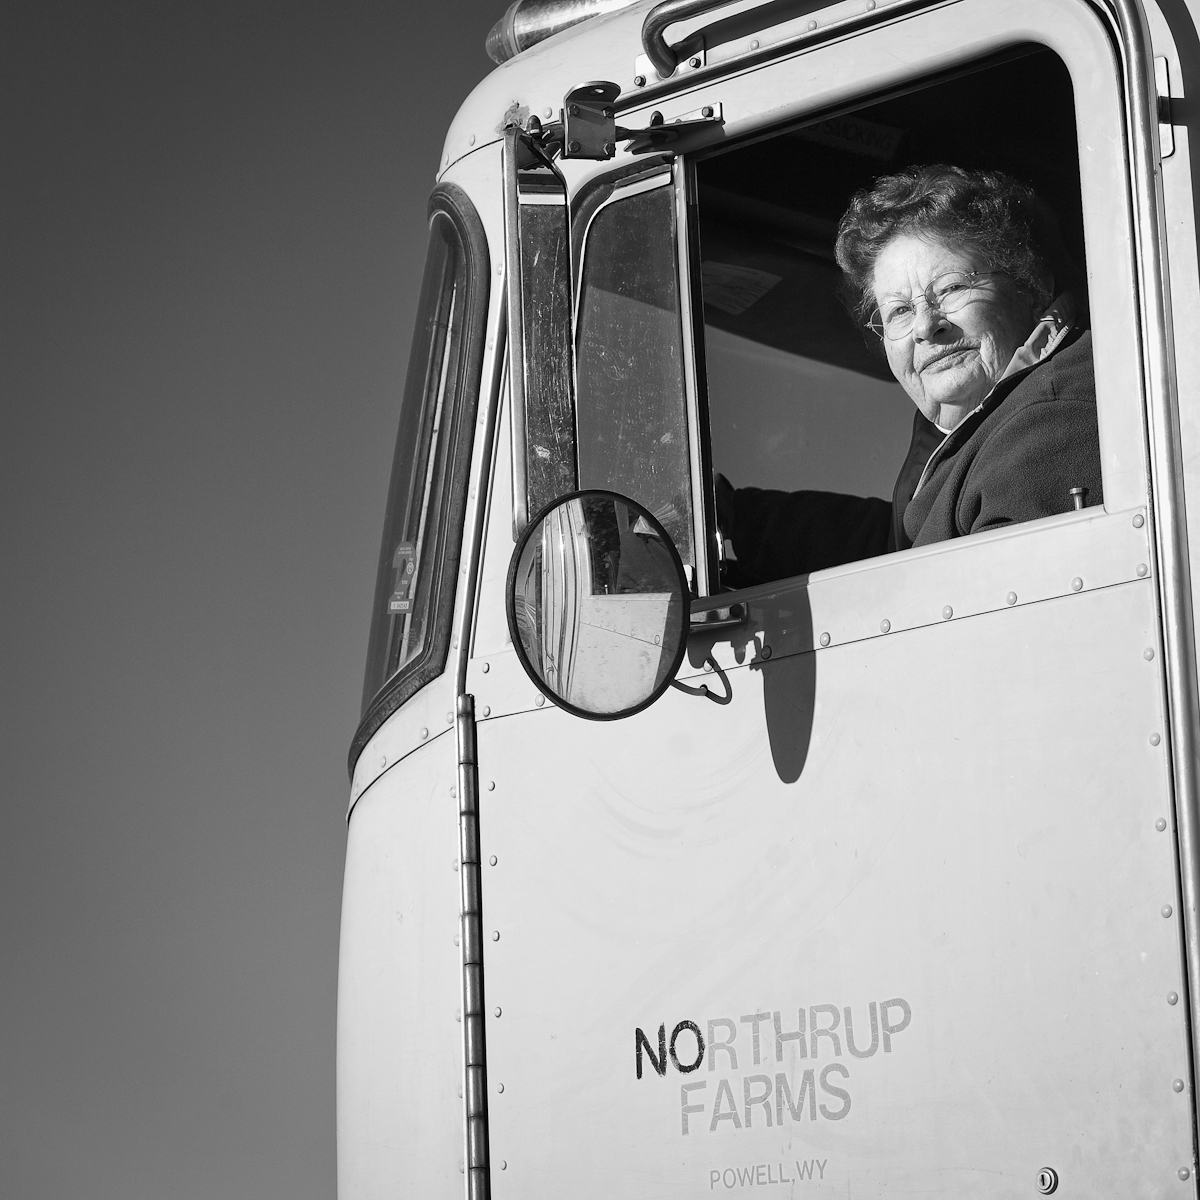 Been Here for Generations is a portrait series about generational farming families from Powell, Wyoming who still farm, and in many cases continue to live on their family's early century homestead.  Mary Ann Northrup  drives beet truck on her family's 1929 homestead.